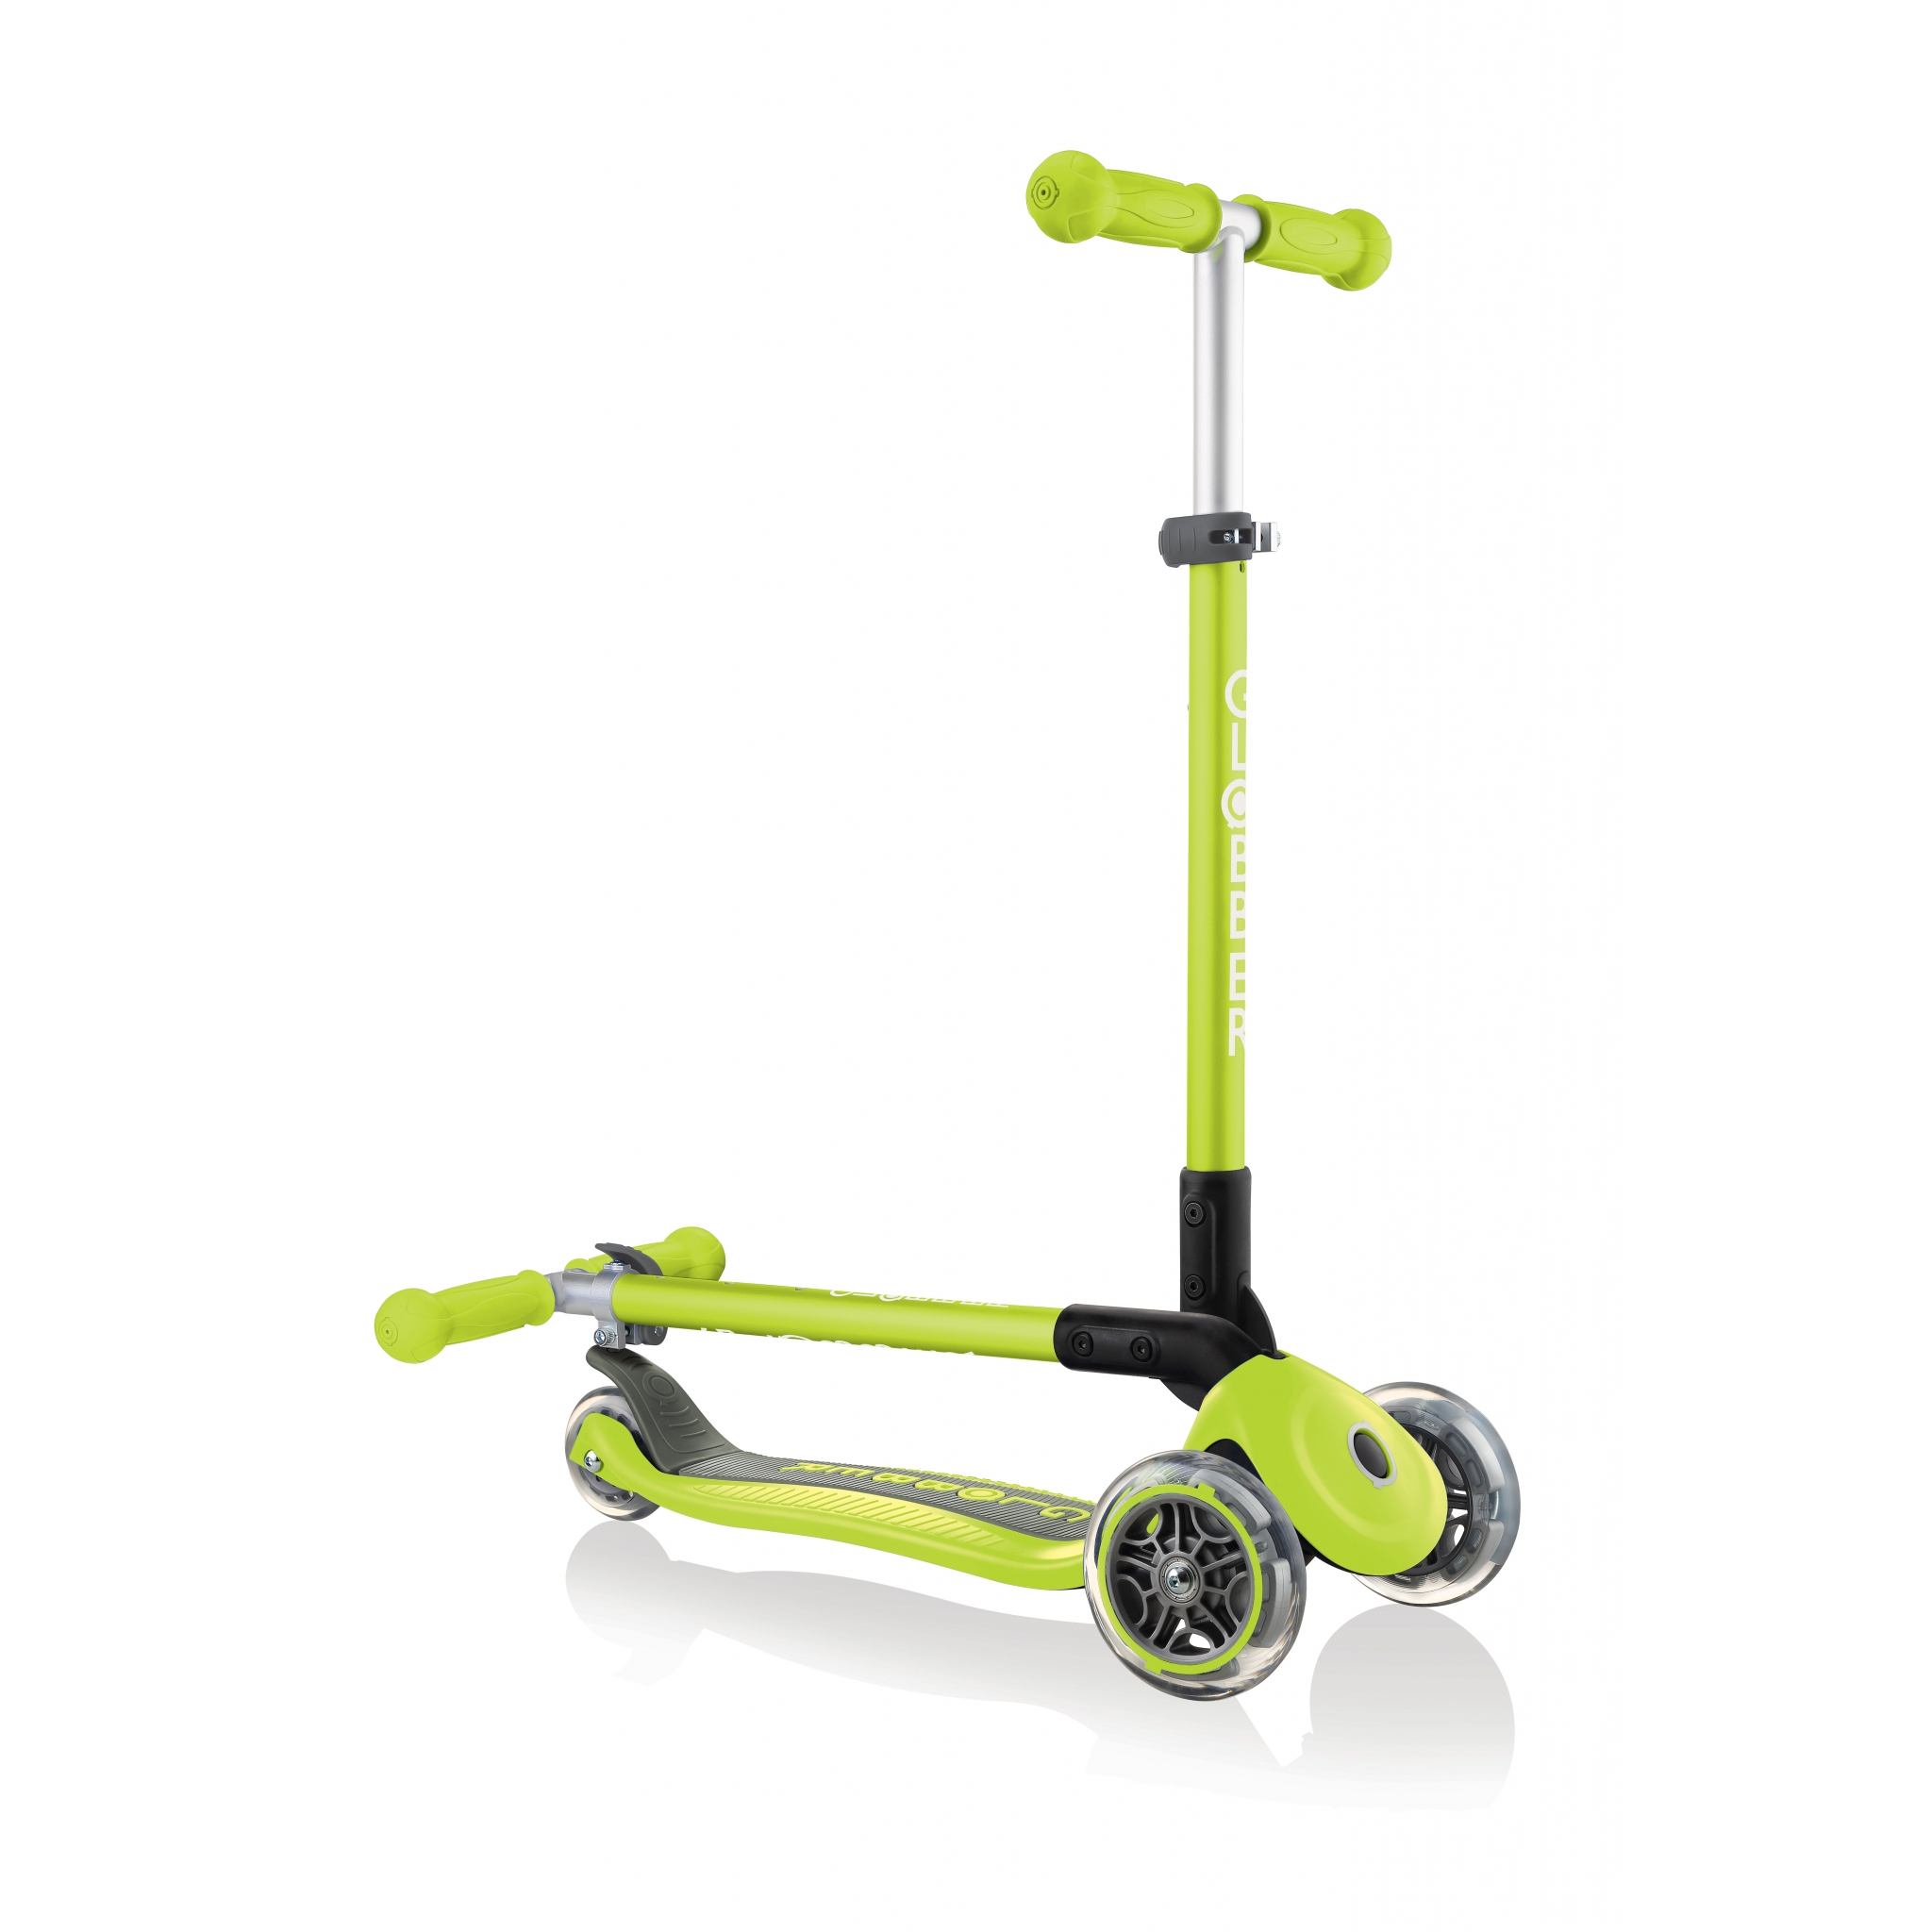 PRIMO-FOLDABLE-3-wheel-fold-up-scooter-for-kids-lime-green